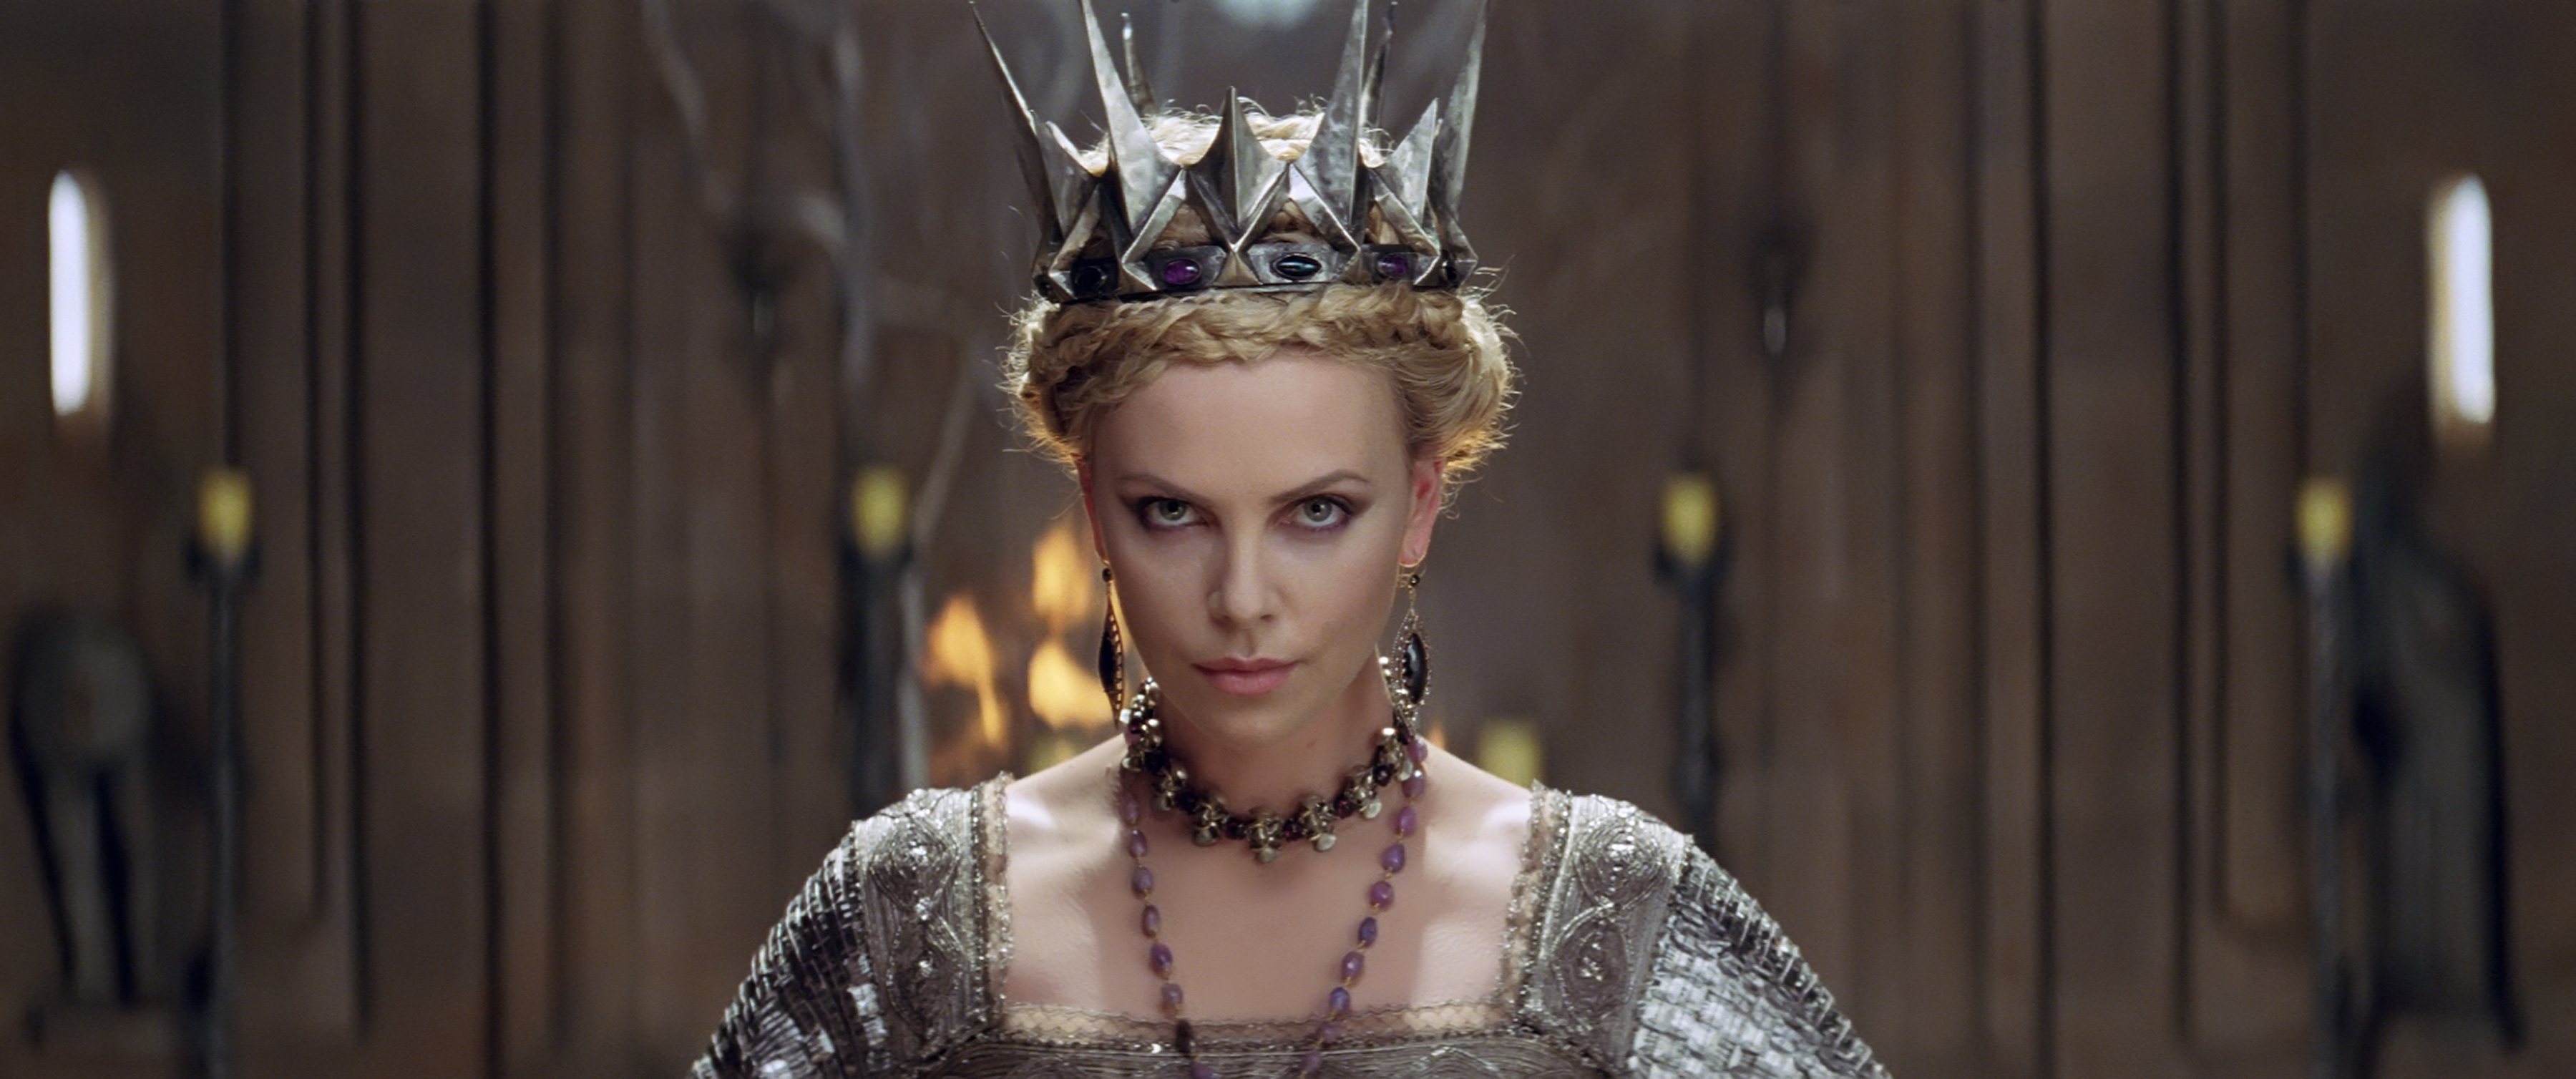 SNOW WHITE AND THE HUNTSMAN знаки